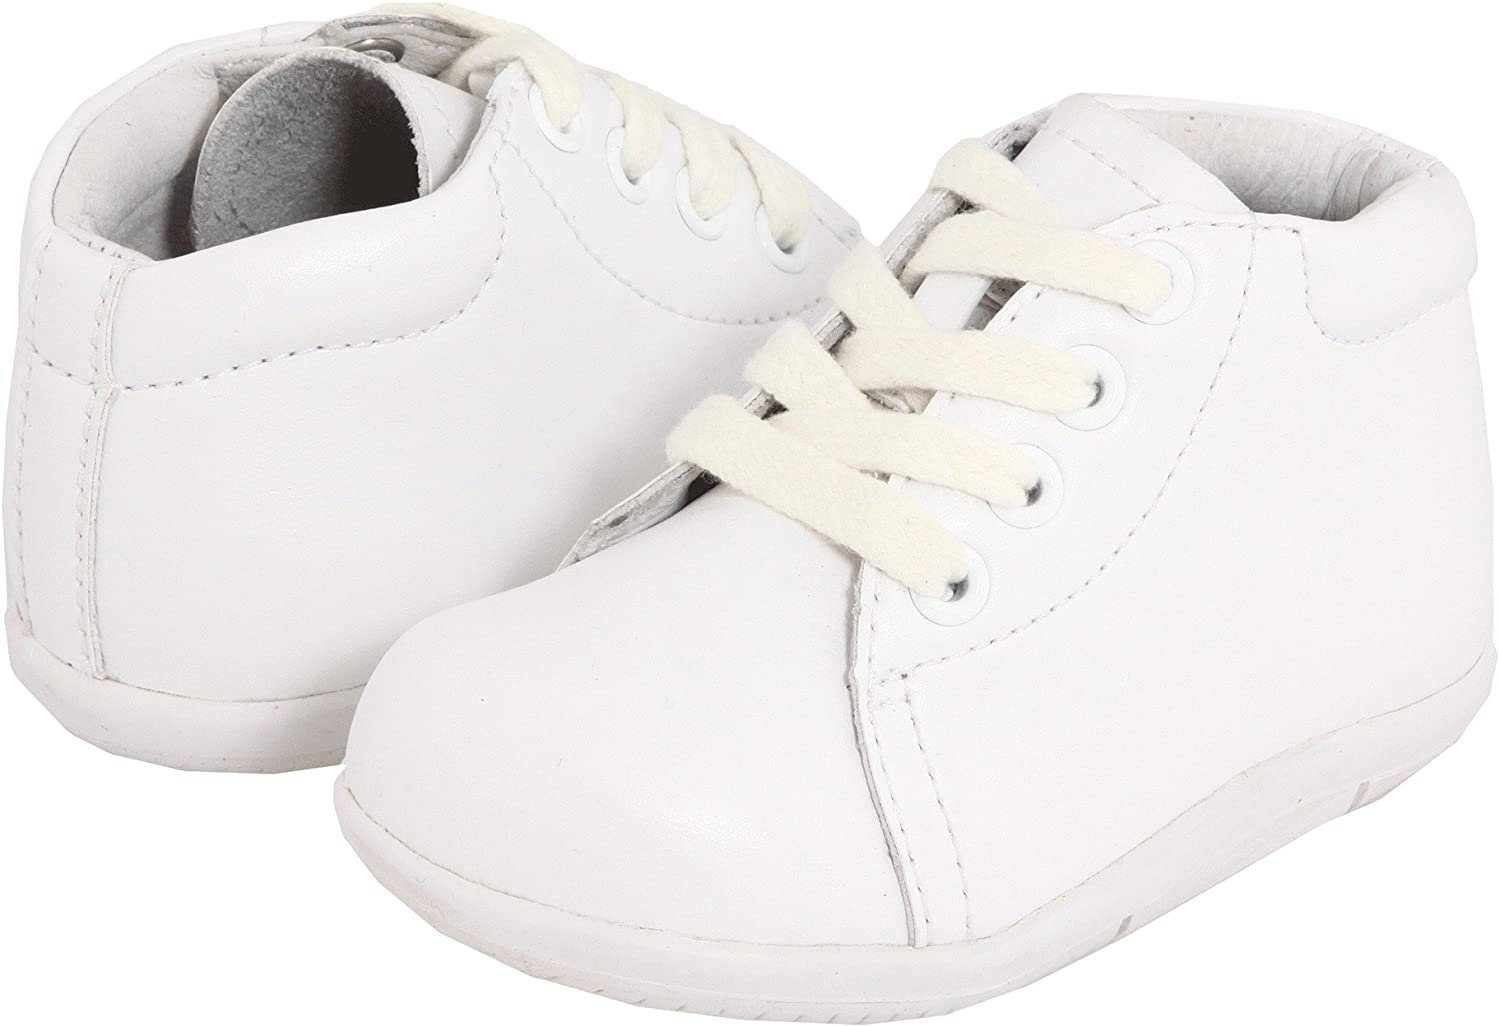   Stride Rite SRT Baby and Toddler Boys Elliot Leather Sneaker   Sneakers